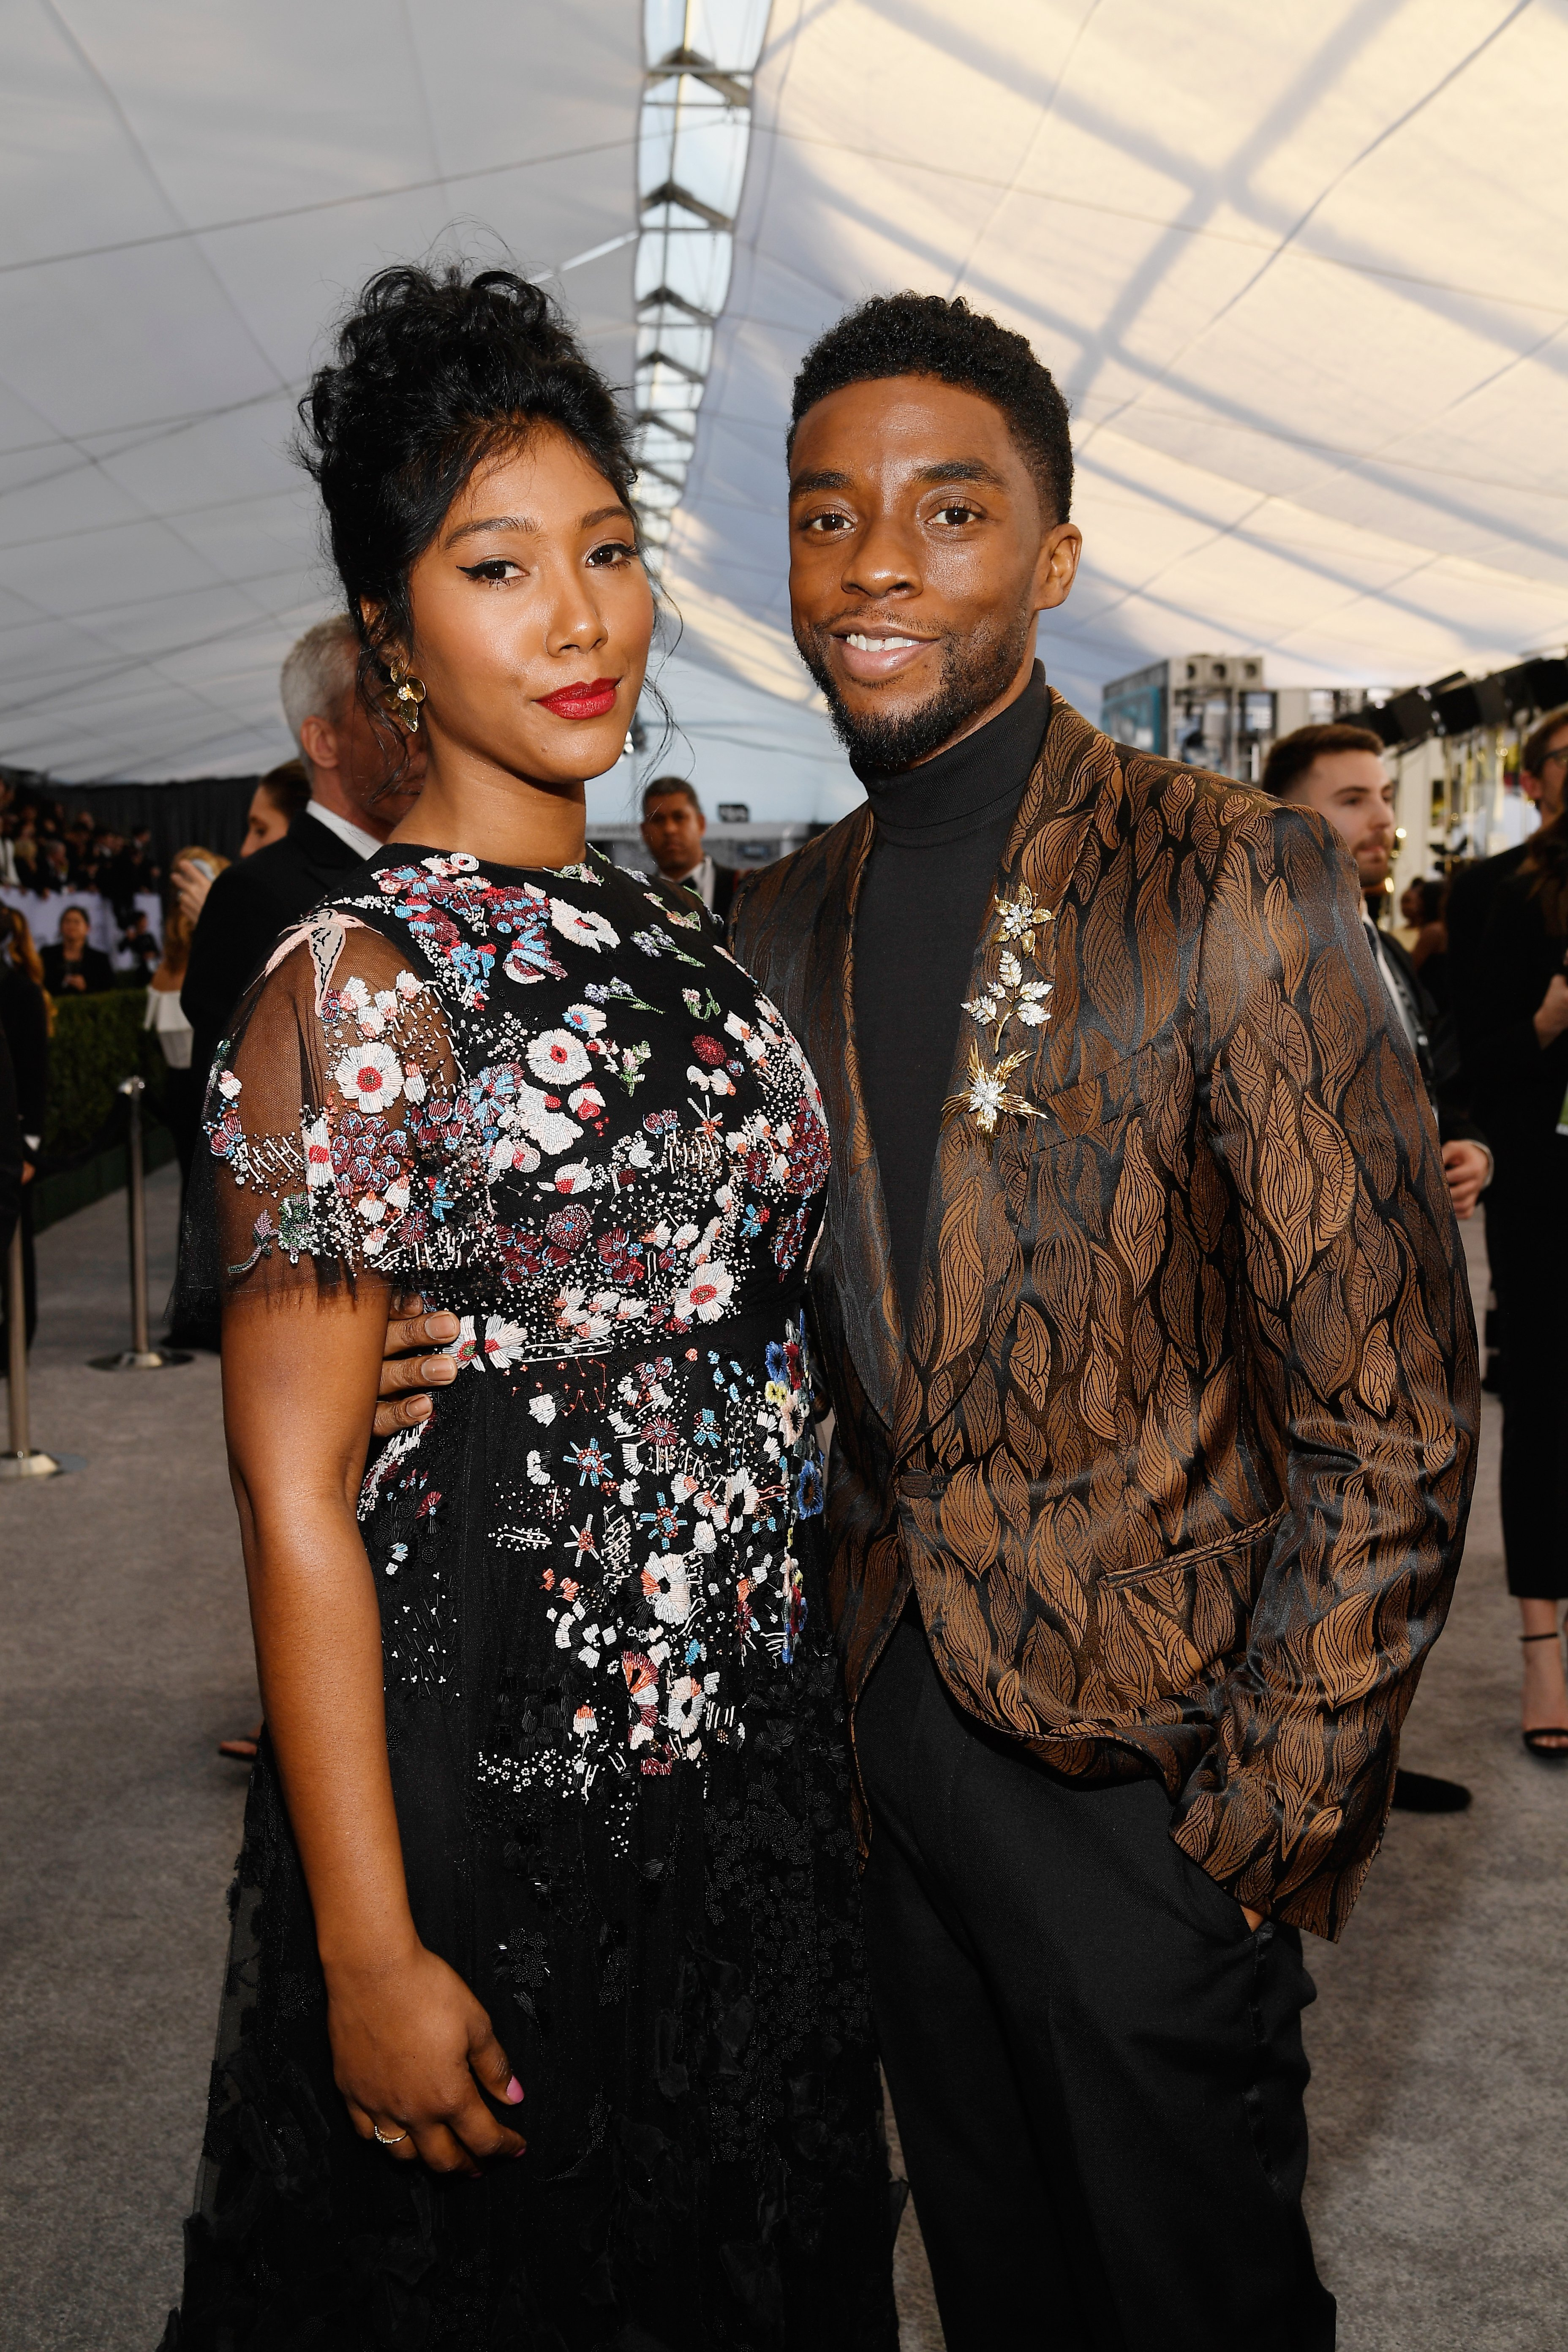 Chadwick Boseman and Simone Ledward at the 25th Annual Screen ActorsGuild Awards at The Shrine Auditorium in Los Angeles, California | Photo: Kevork Djansezian/Getty Images